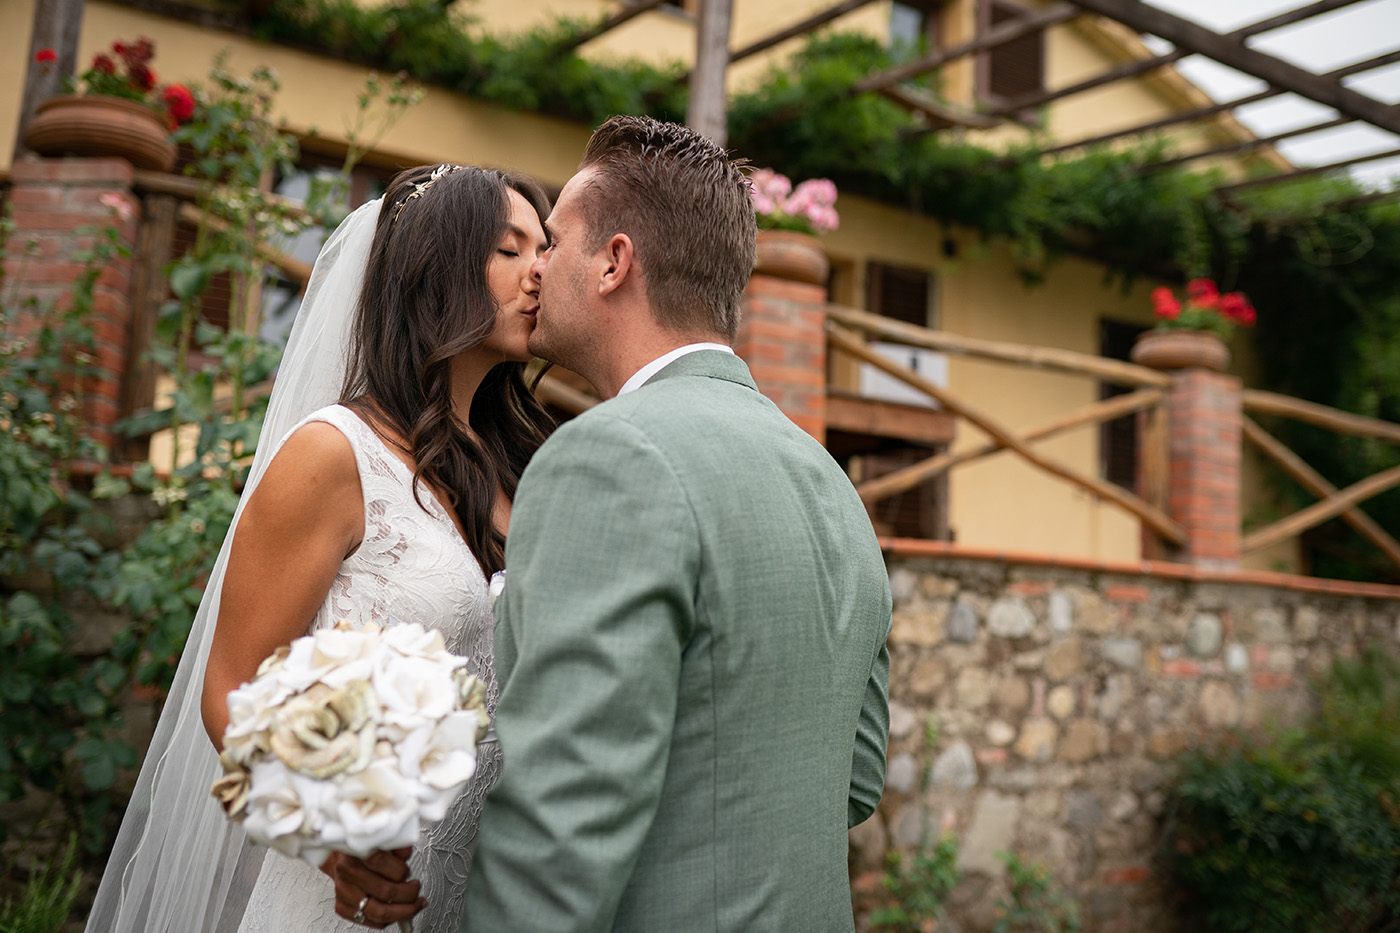 Photo Shoots by Duccio Argentini: Vows Renewal Photographer in Tuscany